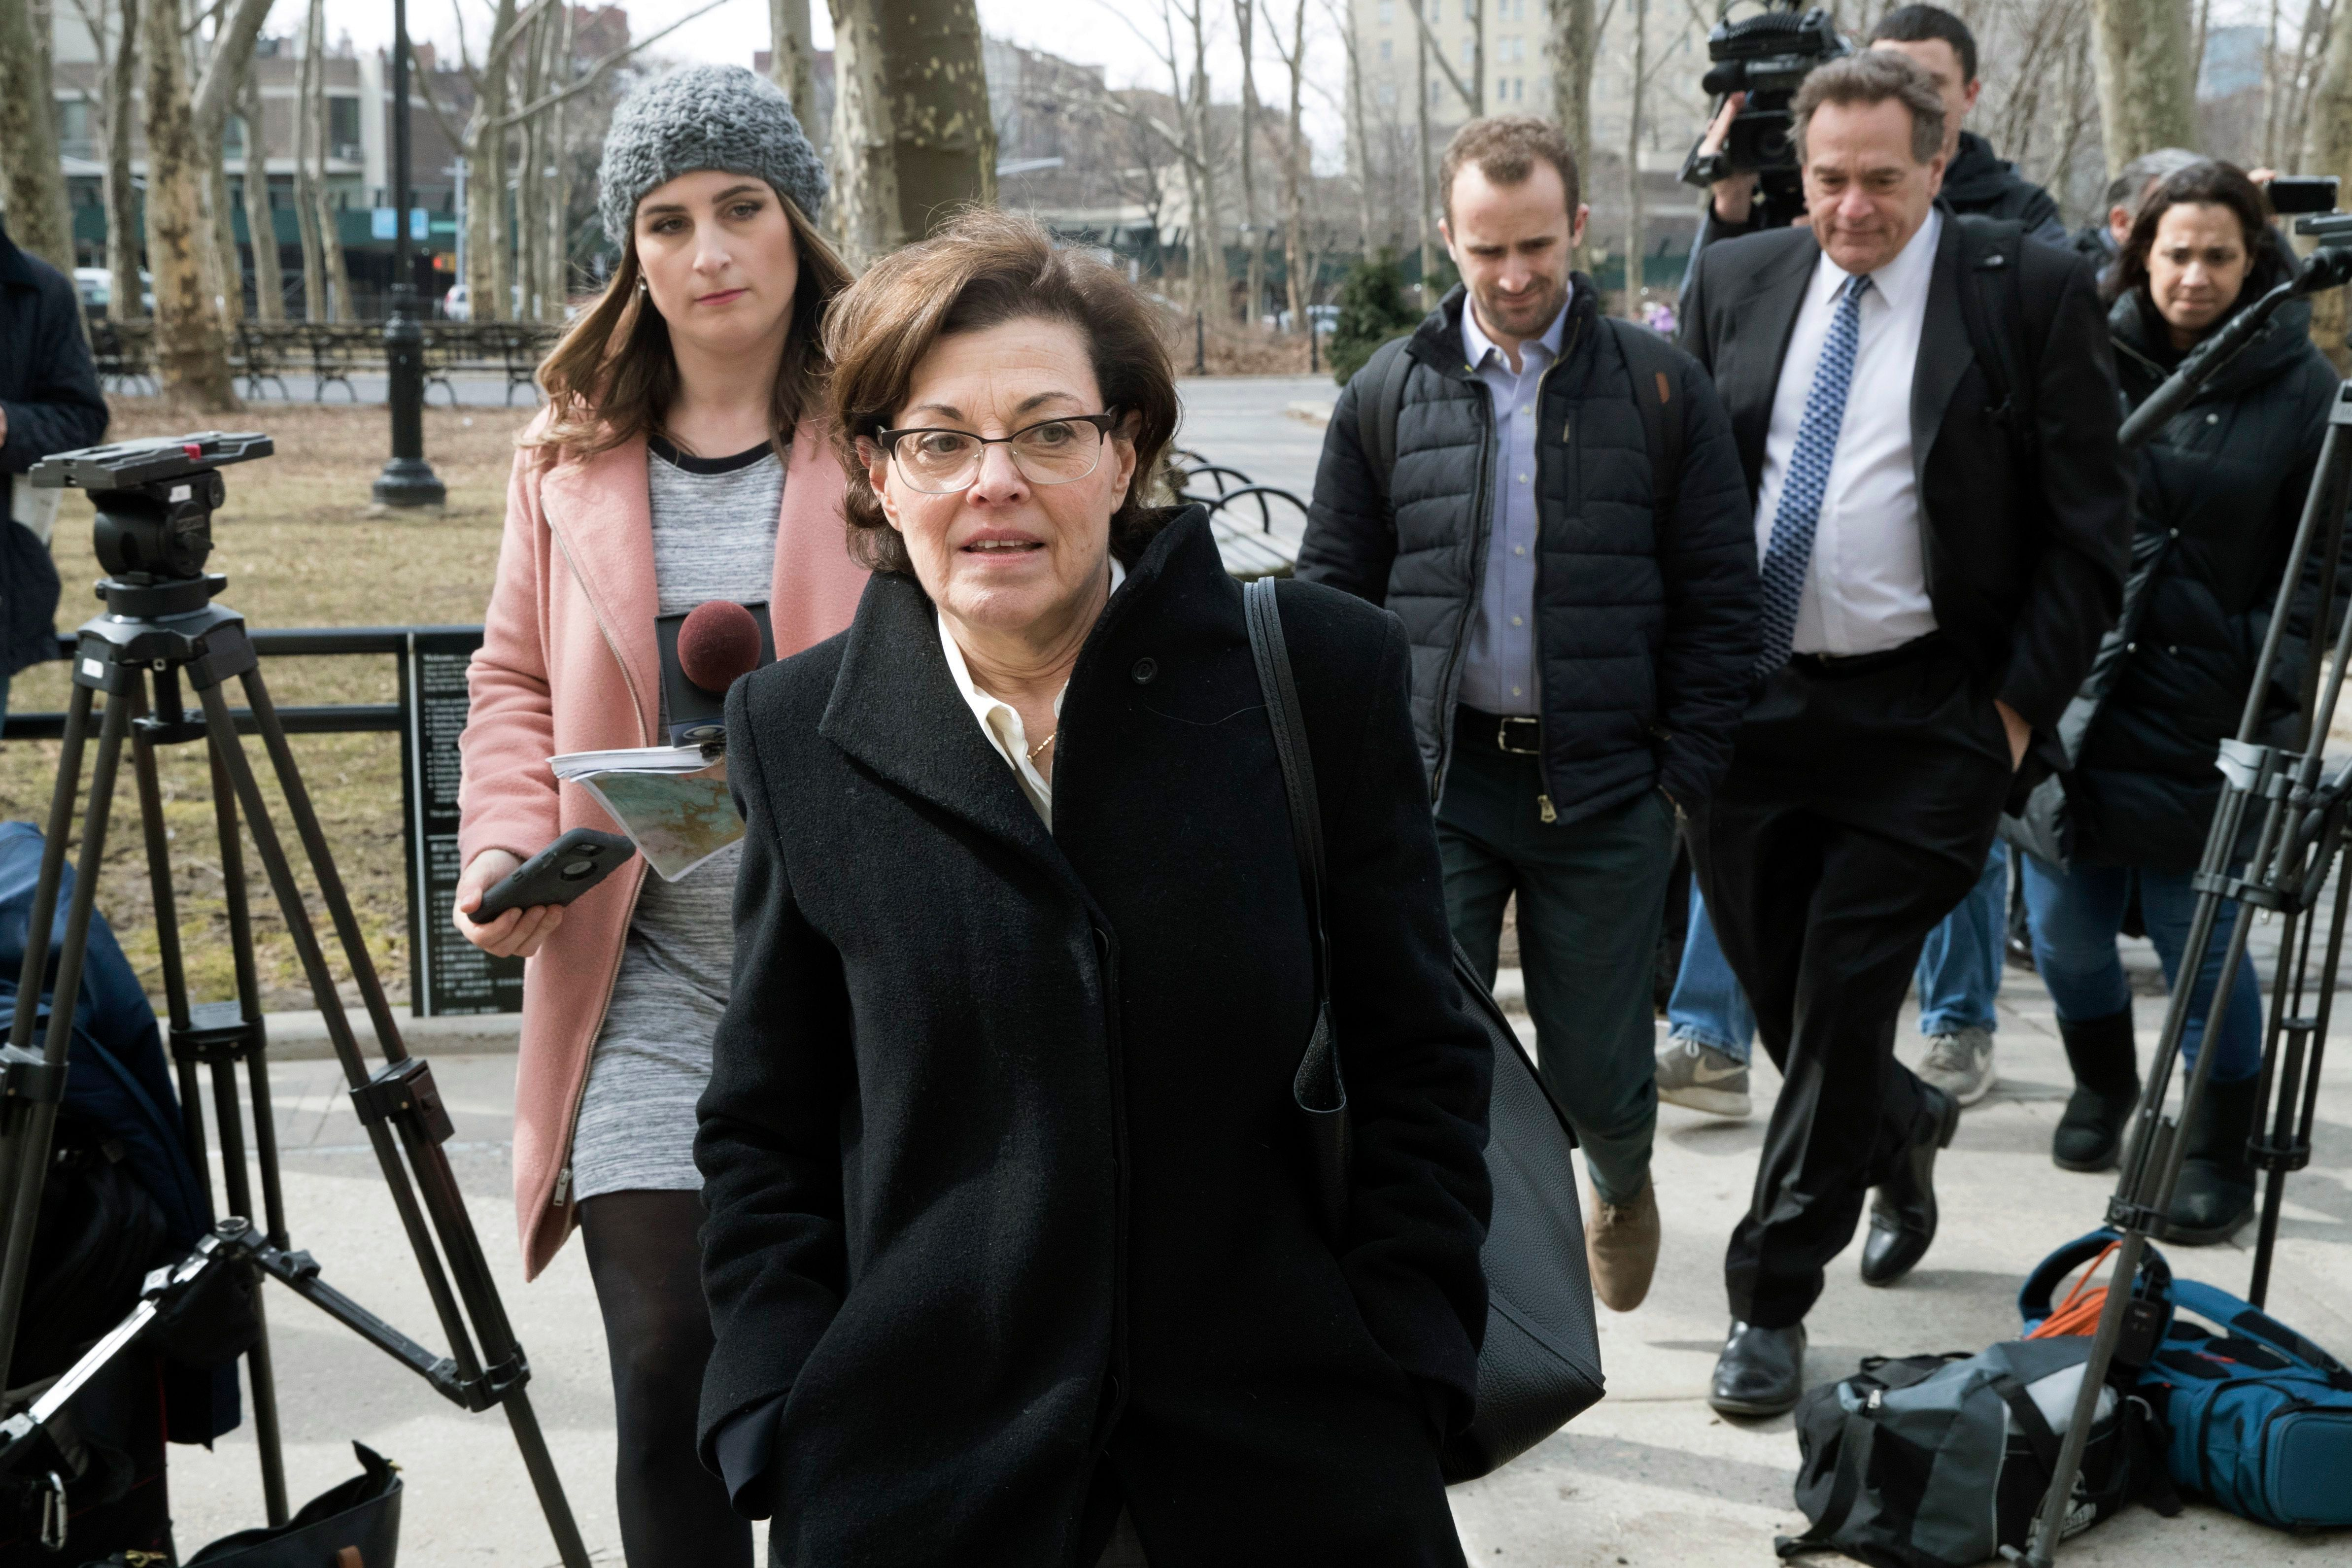 NXIVM Co-founder Nancy Salzman Pleads Guilty to Racketeering Conspiracy